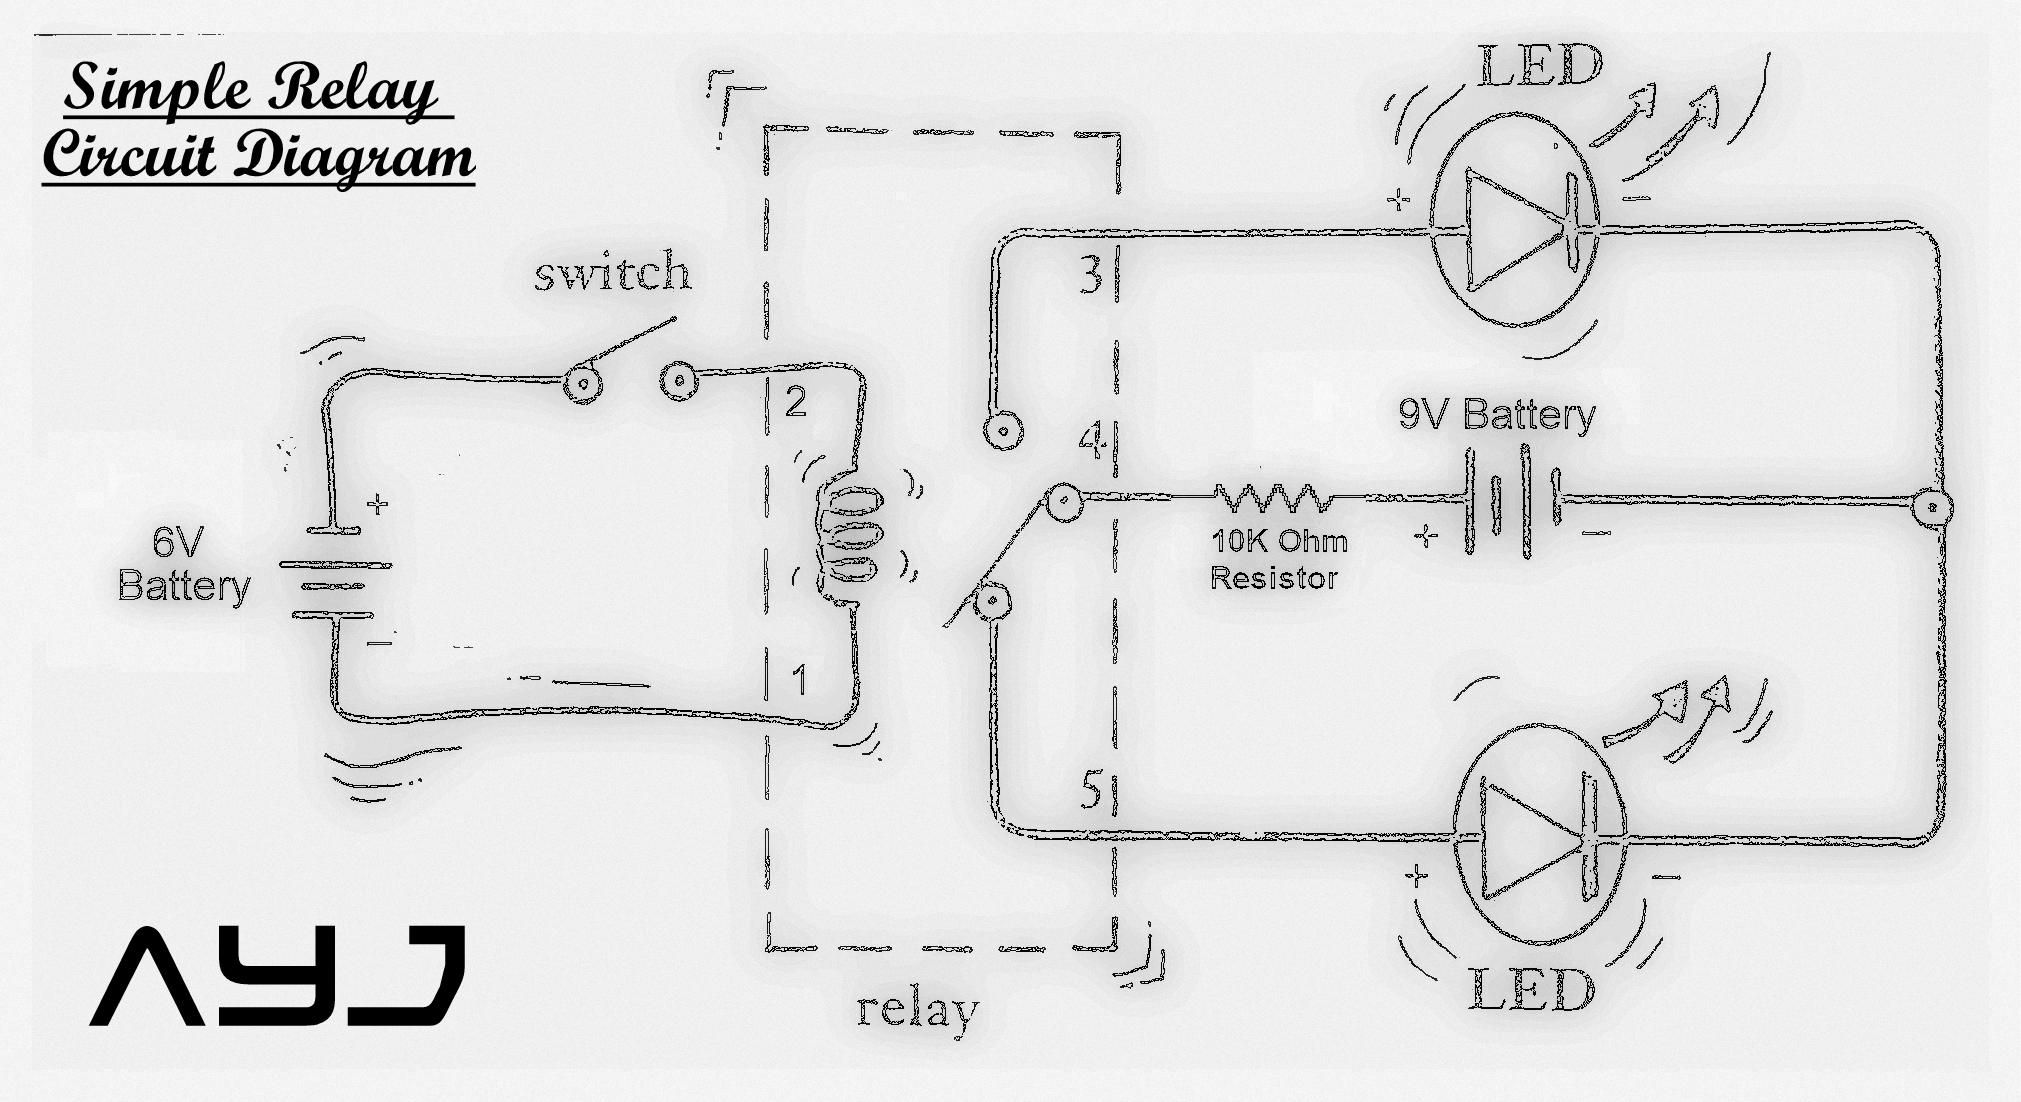 Simple Relay Circuit